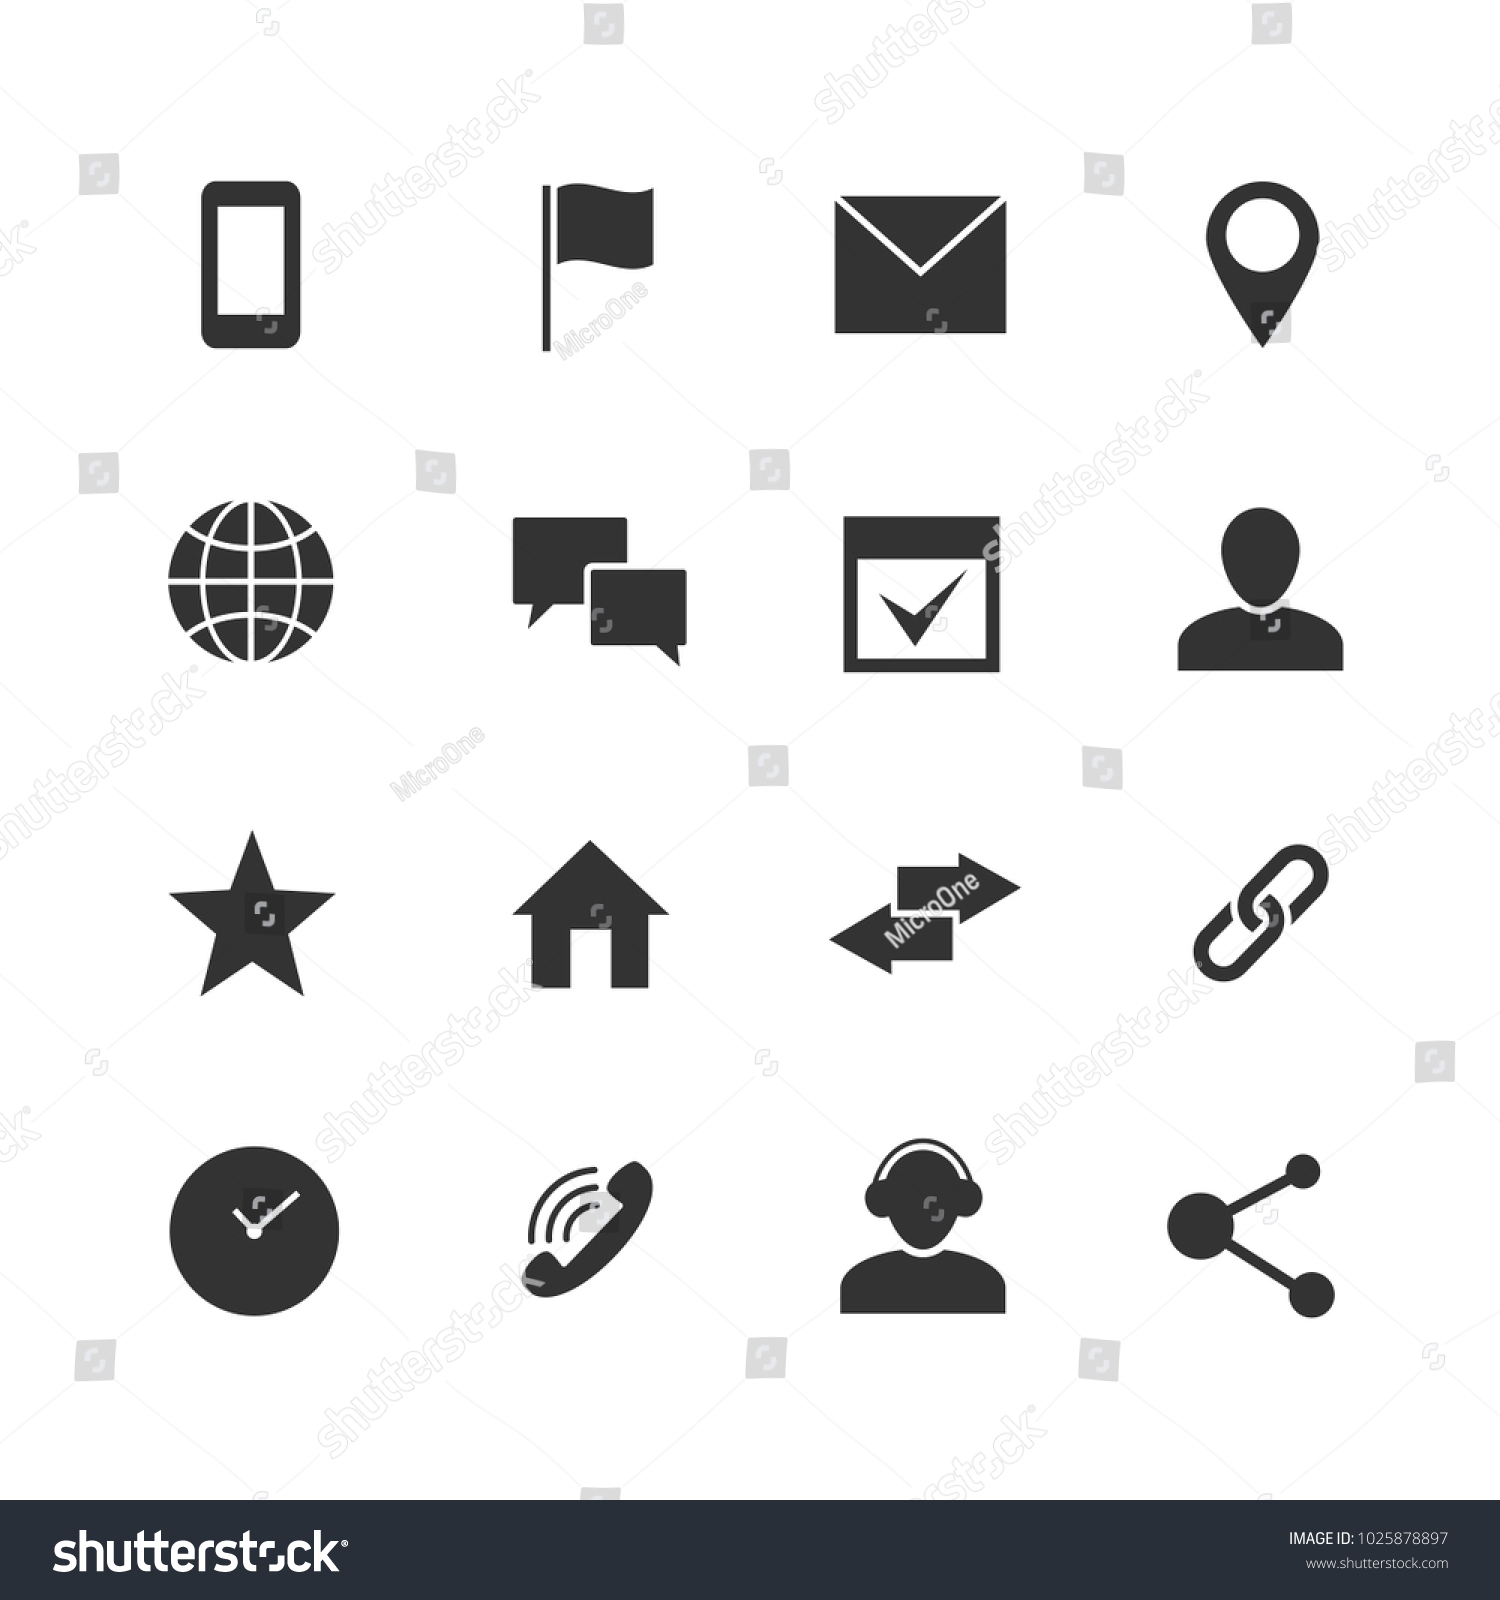 Contact Communication Internet Icons Home Phone Stock Illustration